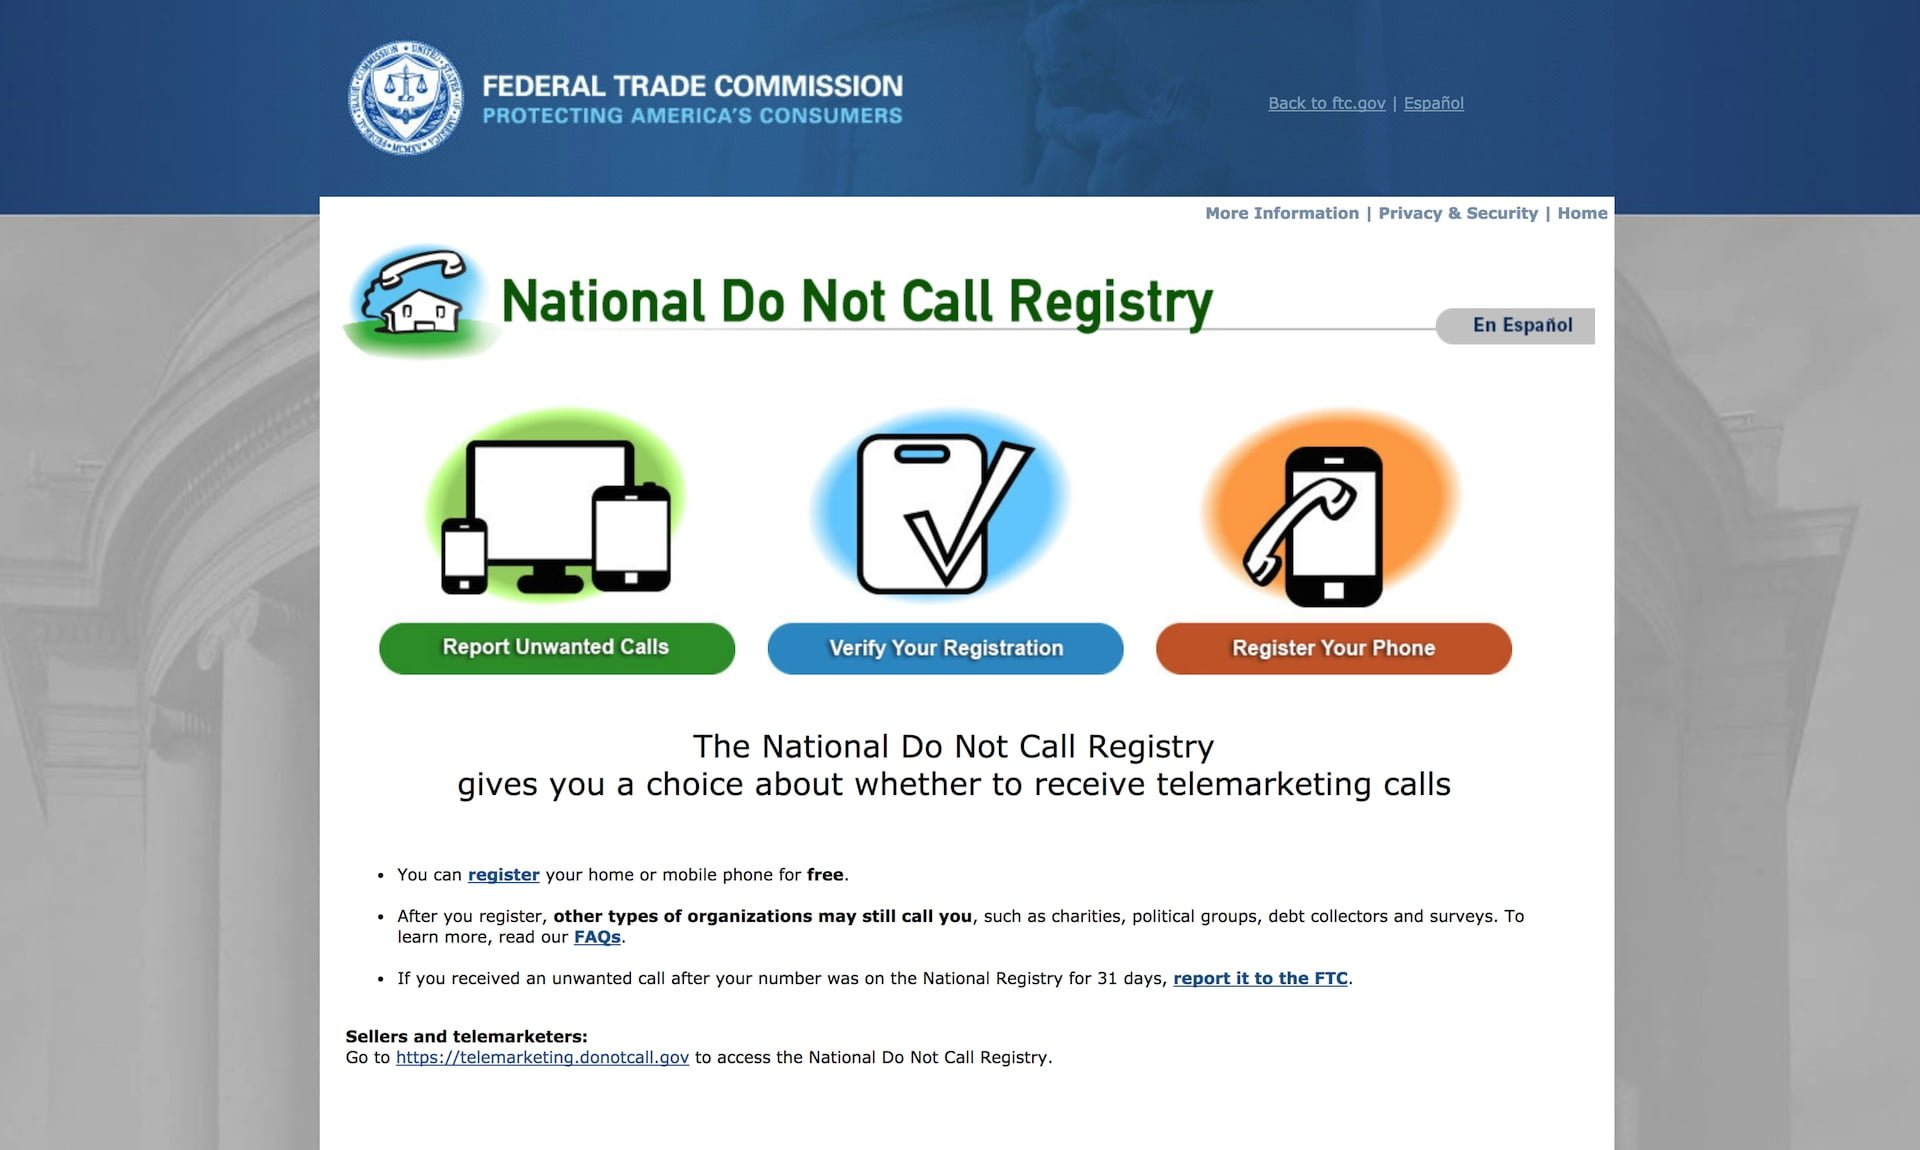 Federal Trade Commission | Protecting America's Consumers